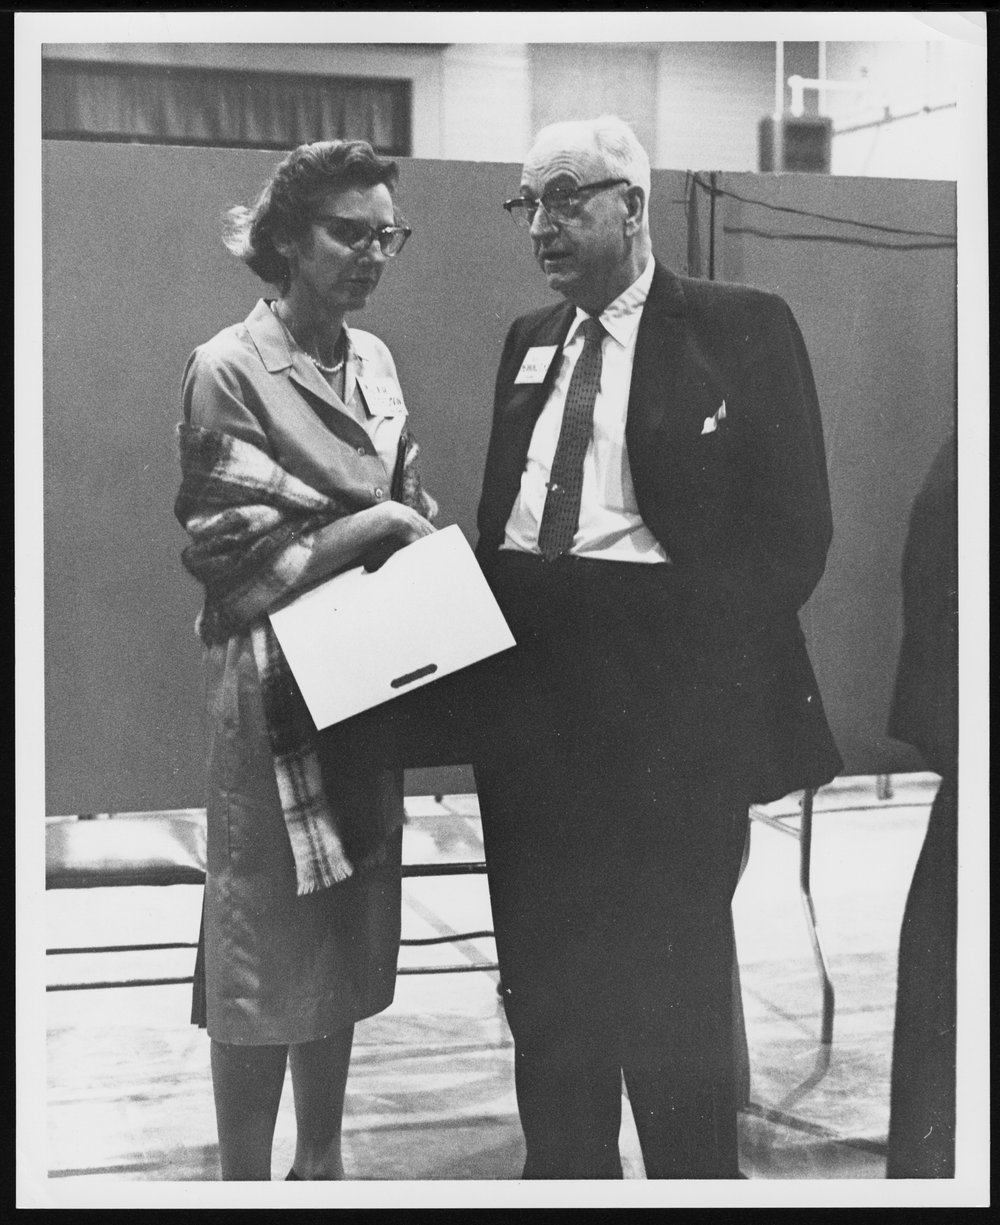 Dr. Karl Menninger - Dr. Karl and his daughter Mrs. Julia Gottesman at the 1961 annual meeting.  They are in the Hopkins Building.